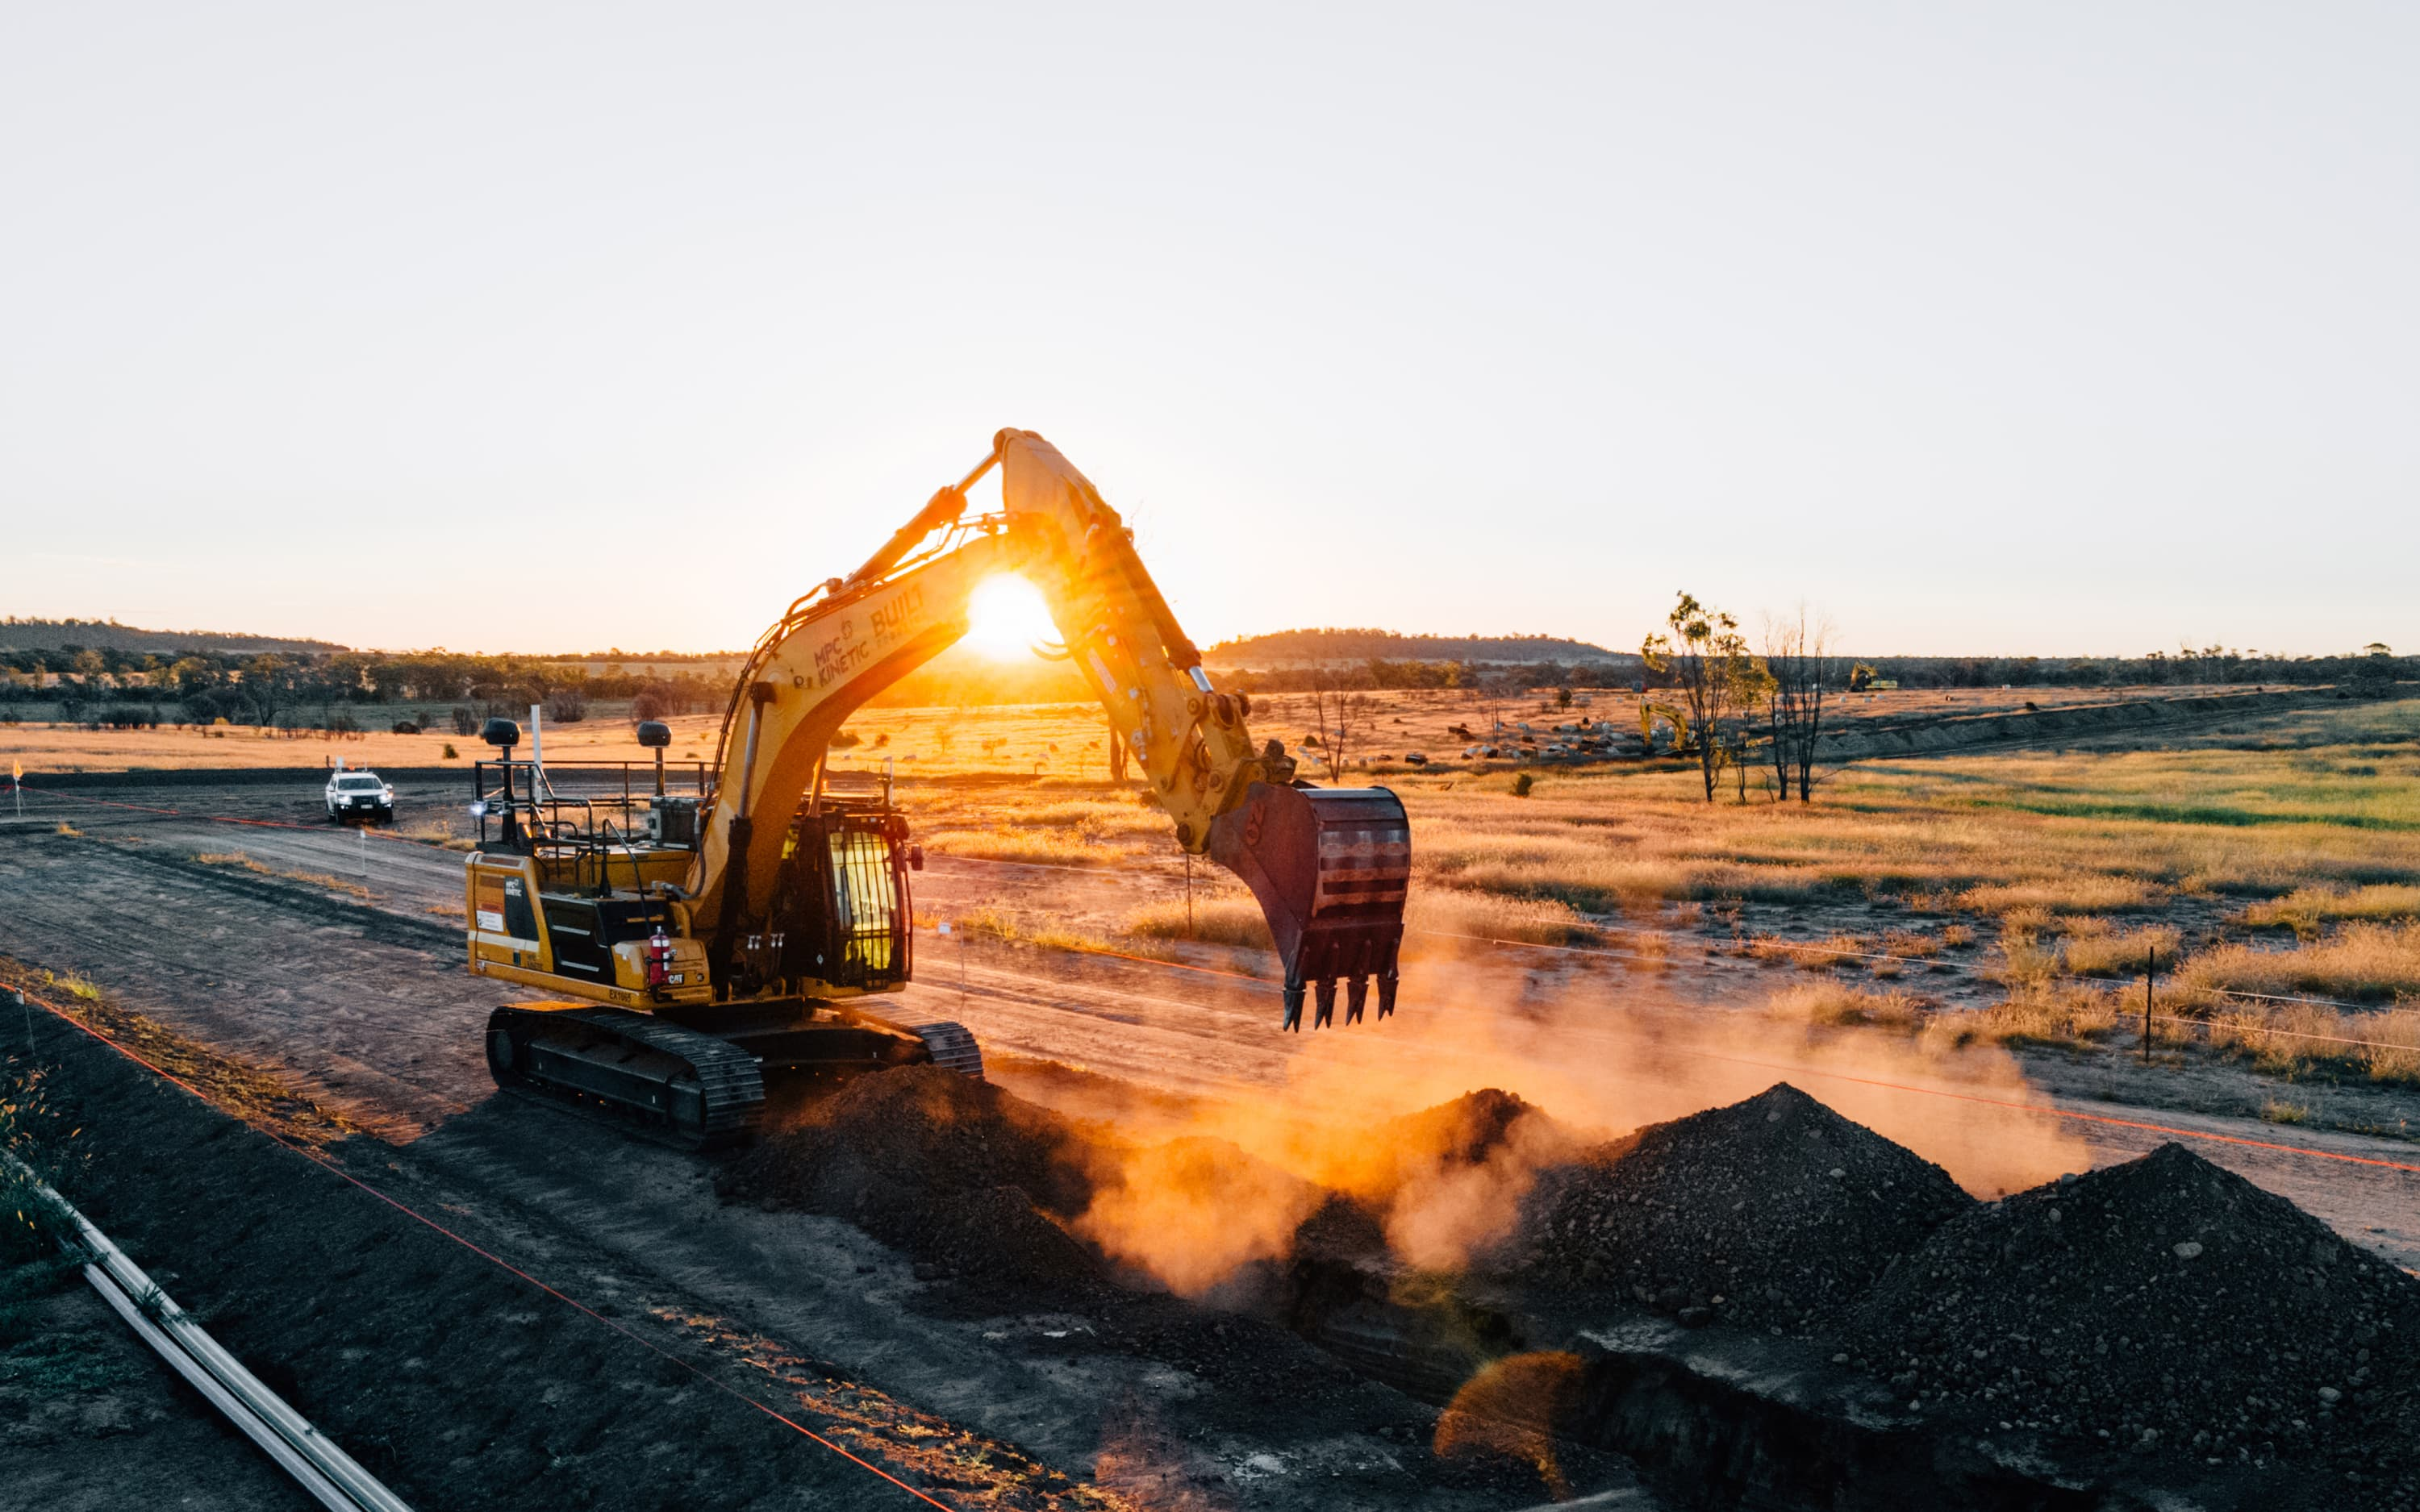 Exosystem digging trench with sunset